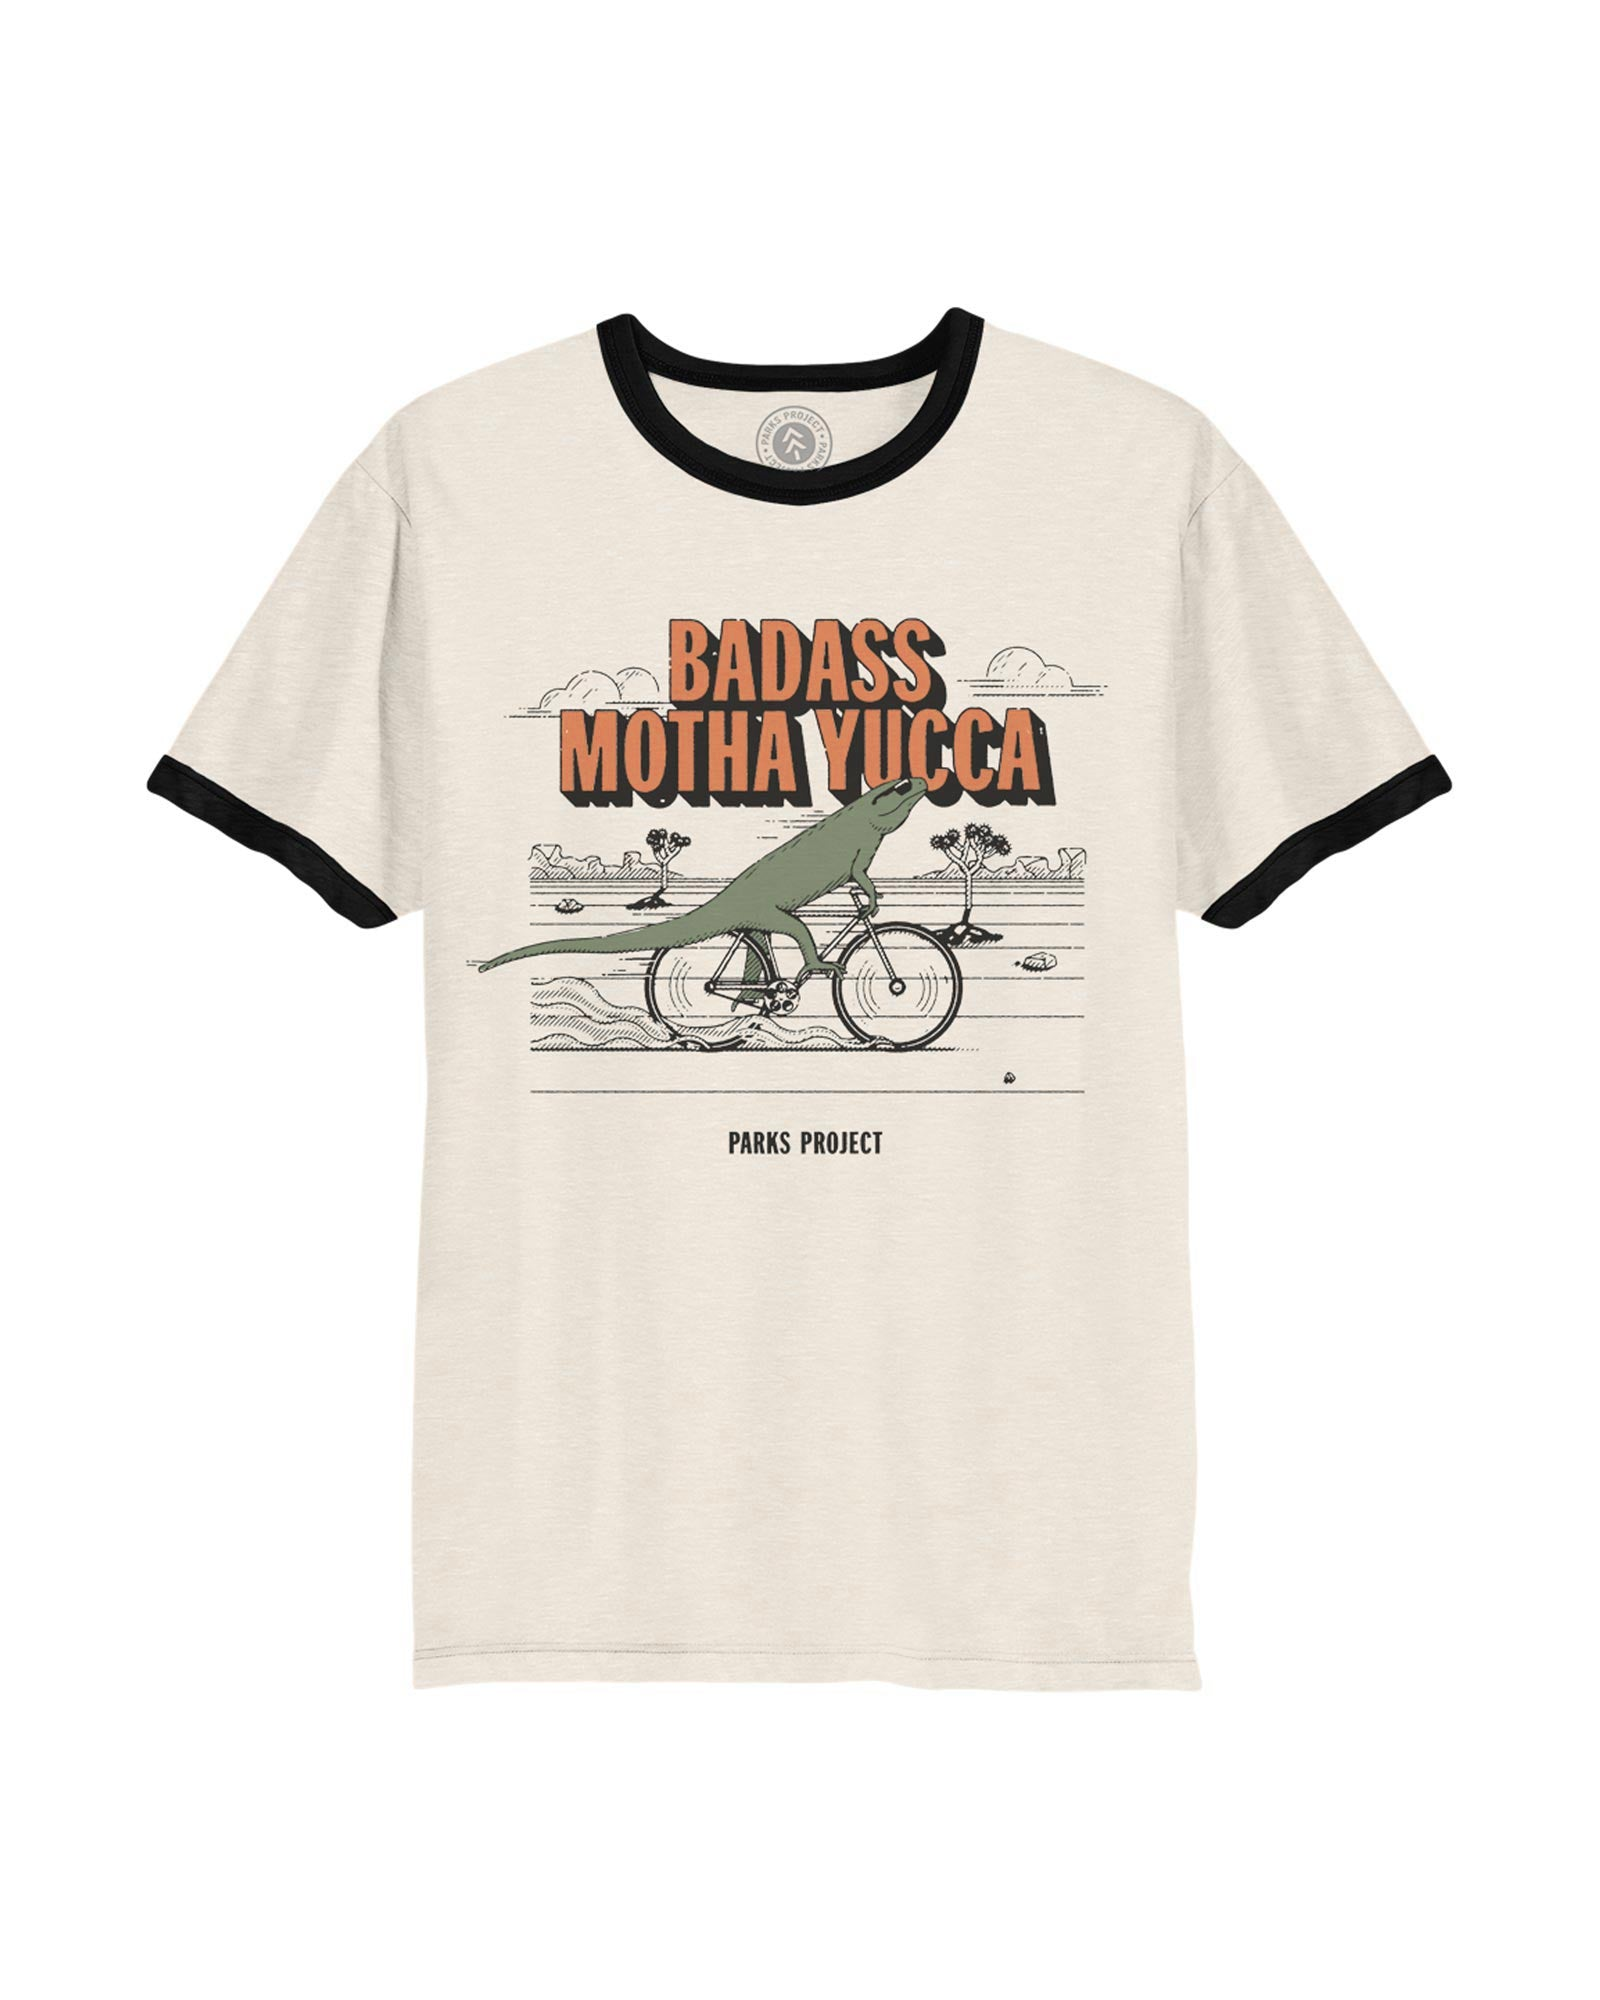 Parks Project Badass Motha Yucca Ringer Tee